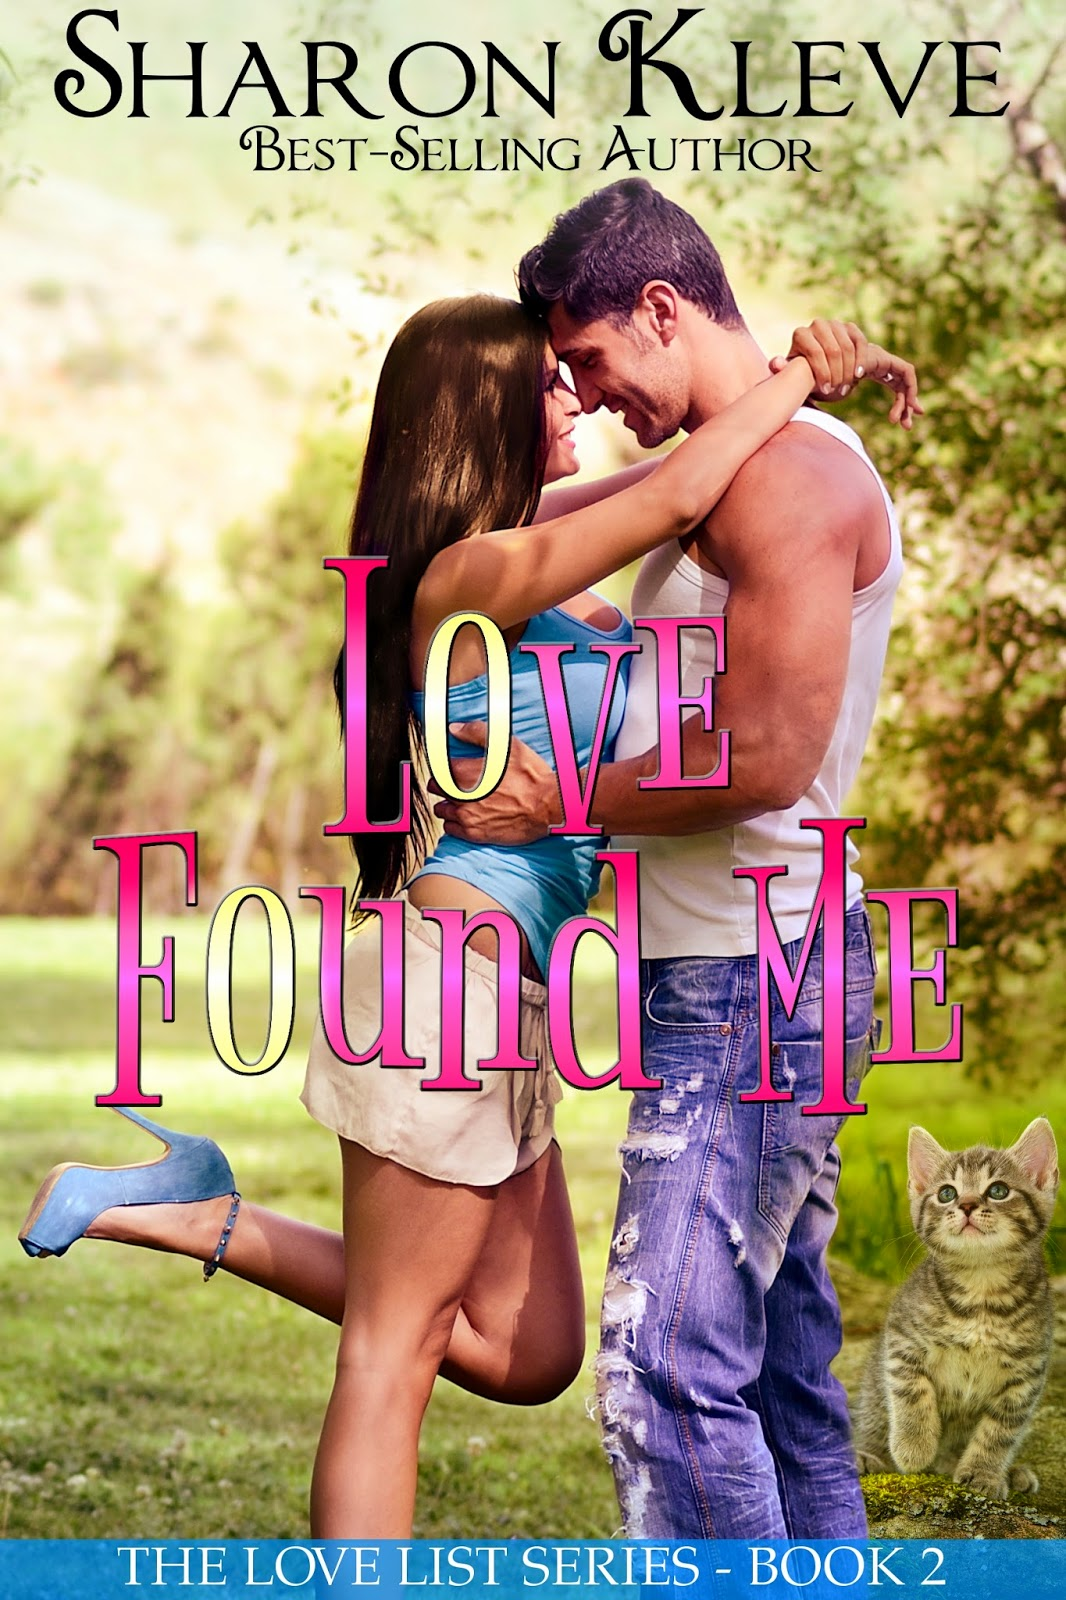 http://www.amazon.com/Love-Found-Me-List-Book-ebook/dp/B00NOAZL0C/ref=sr_1_12?s=books&ie=UTF8&qid=1421614426&sr=1-12&keywords=sharon+kleve